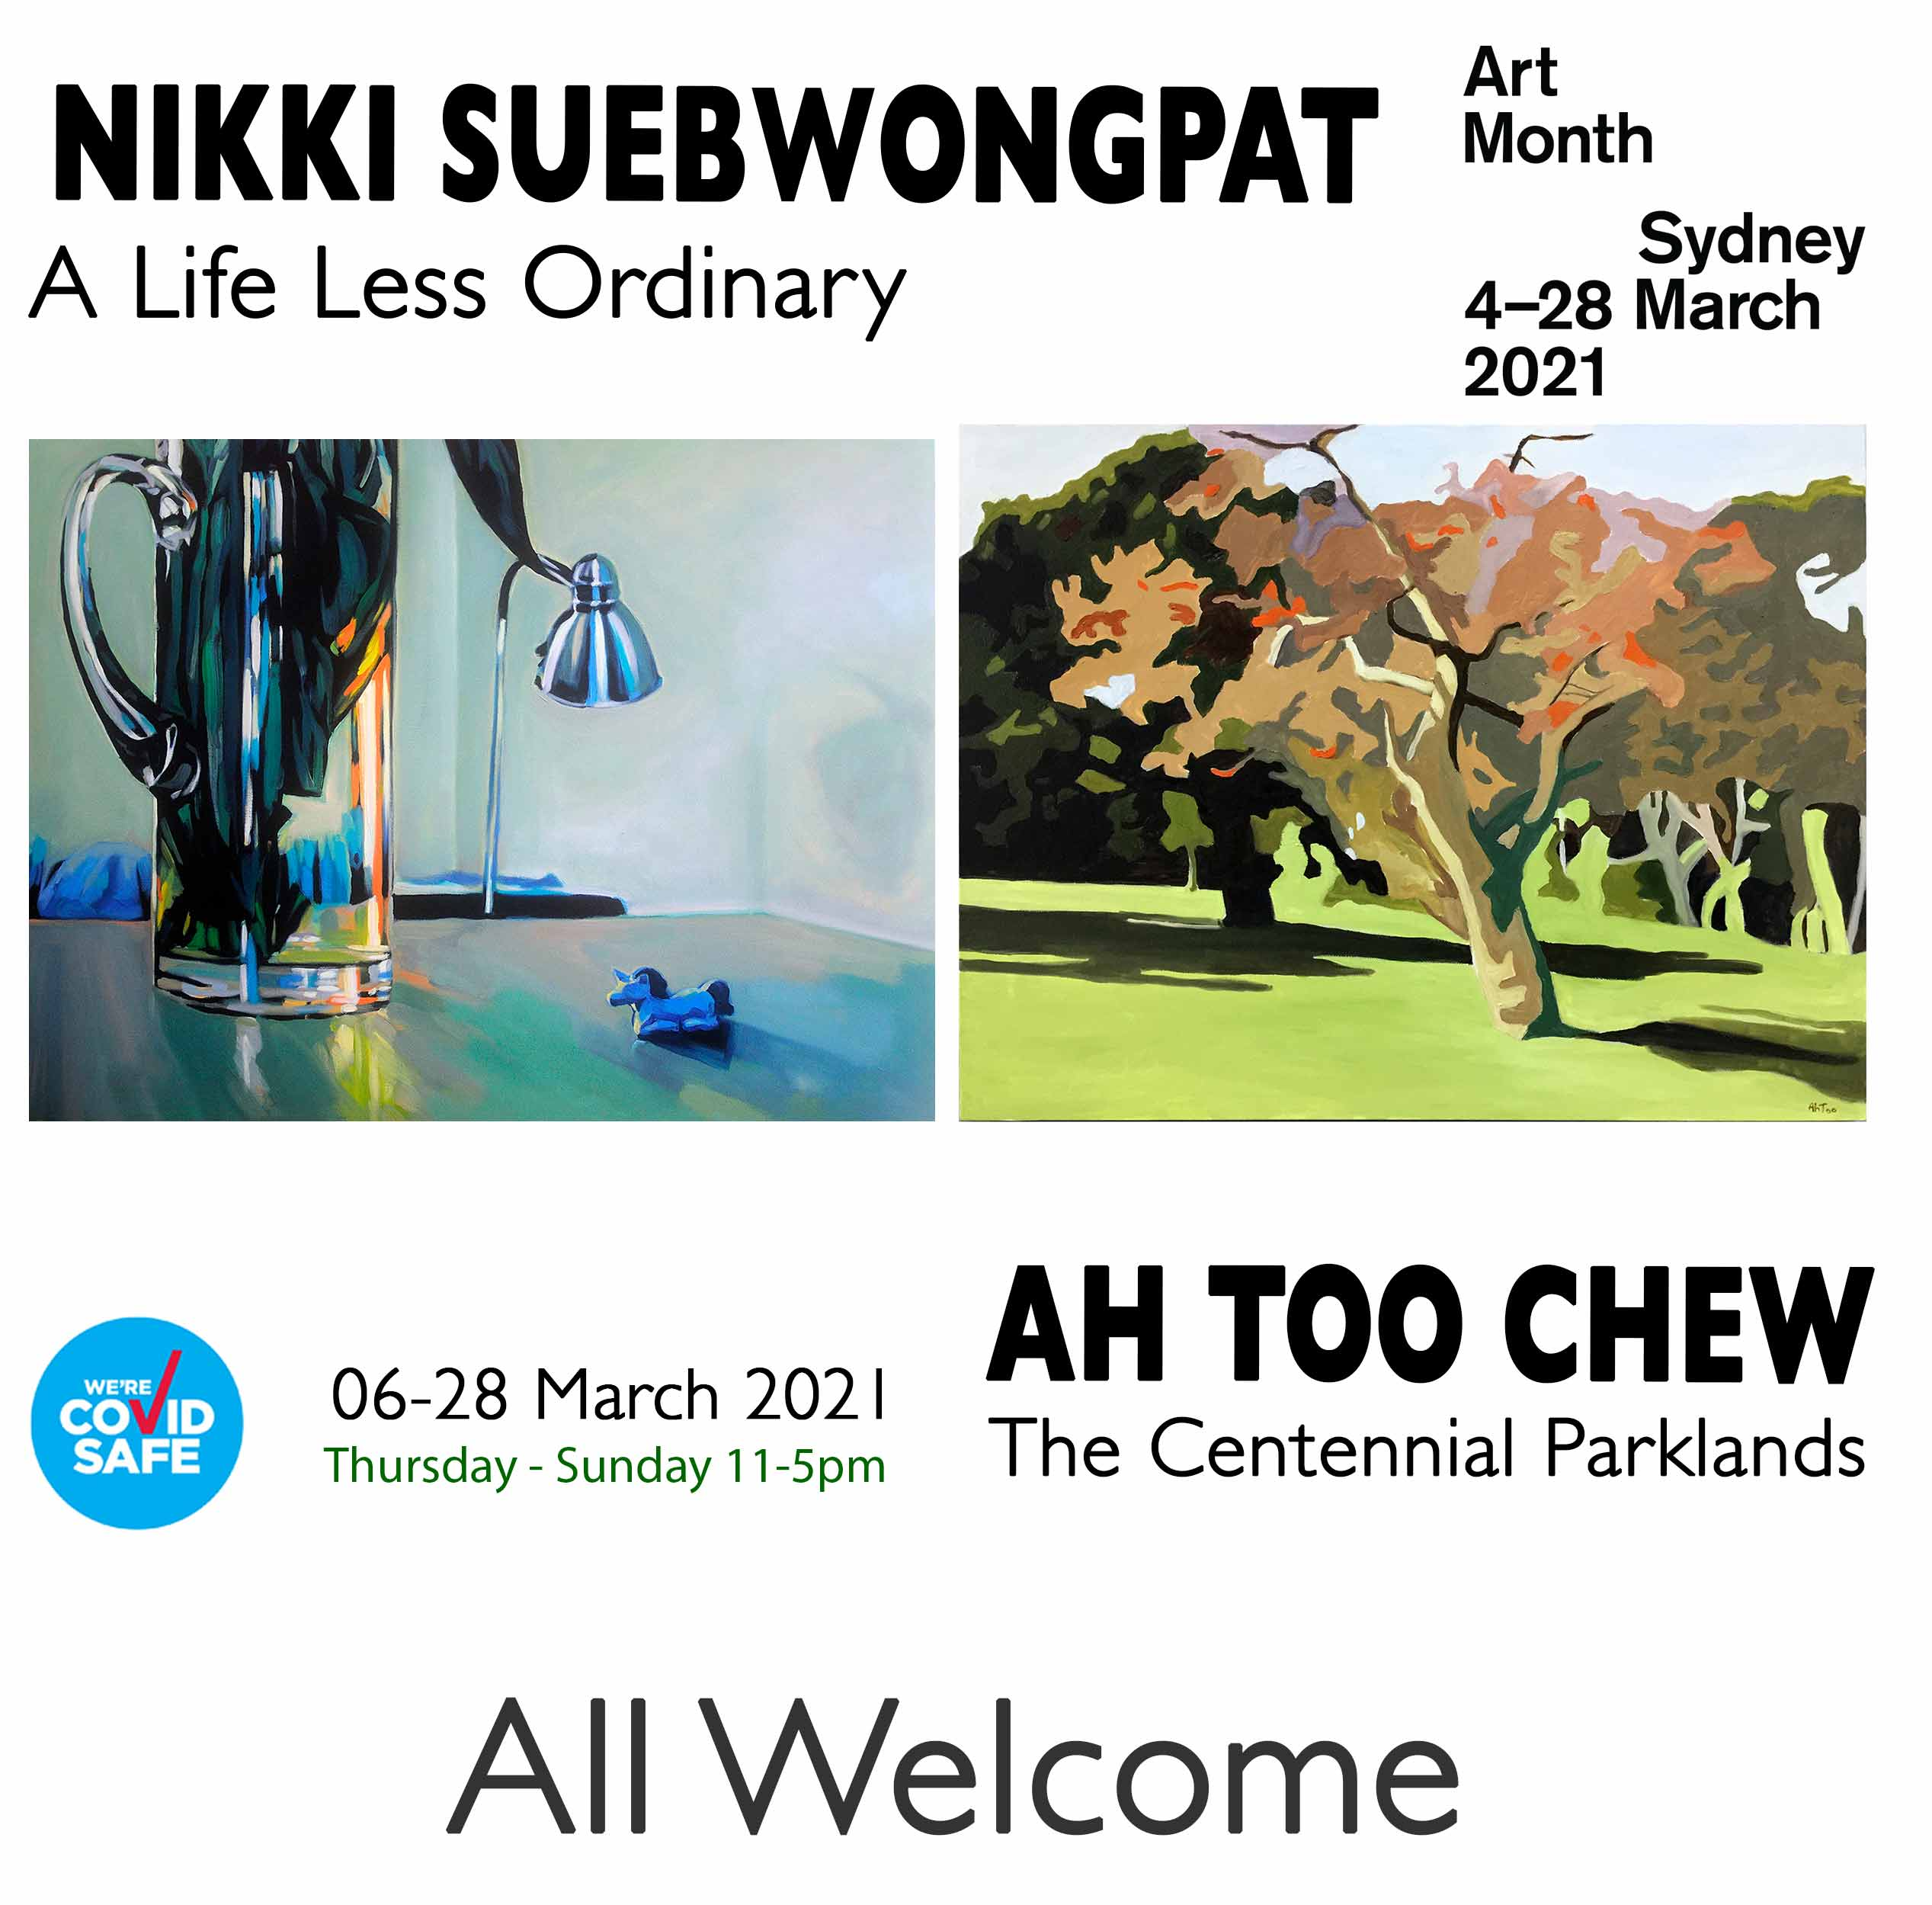 Artsite Galleries | Gallery.1 | A Life Less Ordinary | Nikki Subewongpat | Solo Exhibition | Gallery.2 | The Centennial Parklands | Ah Too Chew | Solo Exhibition | Thursday - Sunday 11-5pm | 06-28 March 2021.